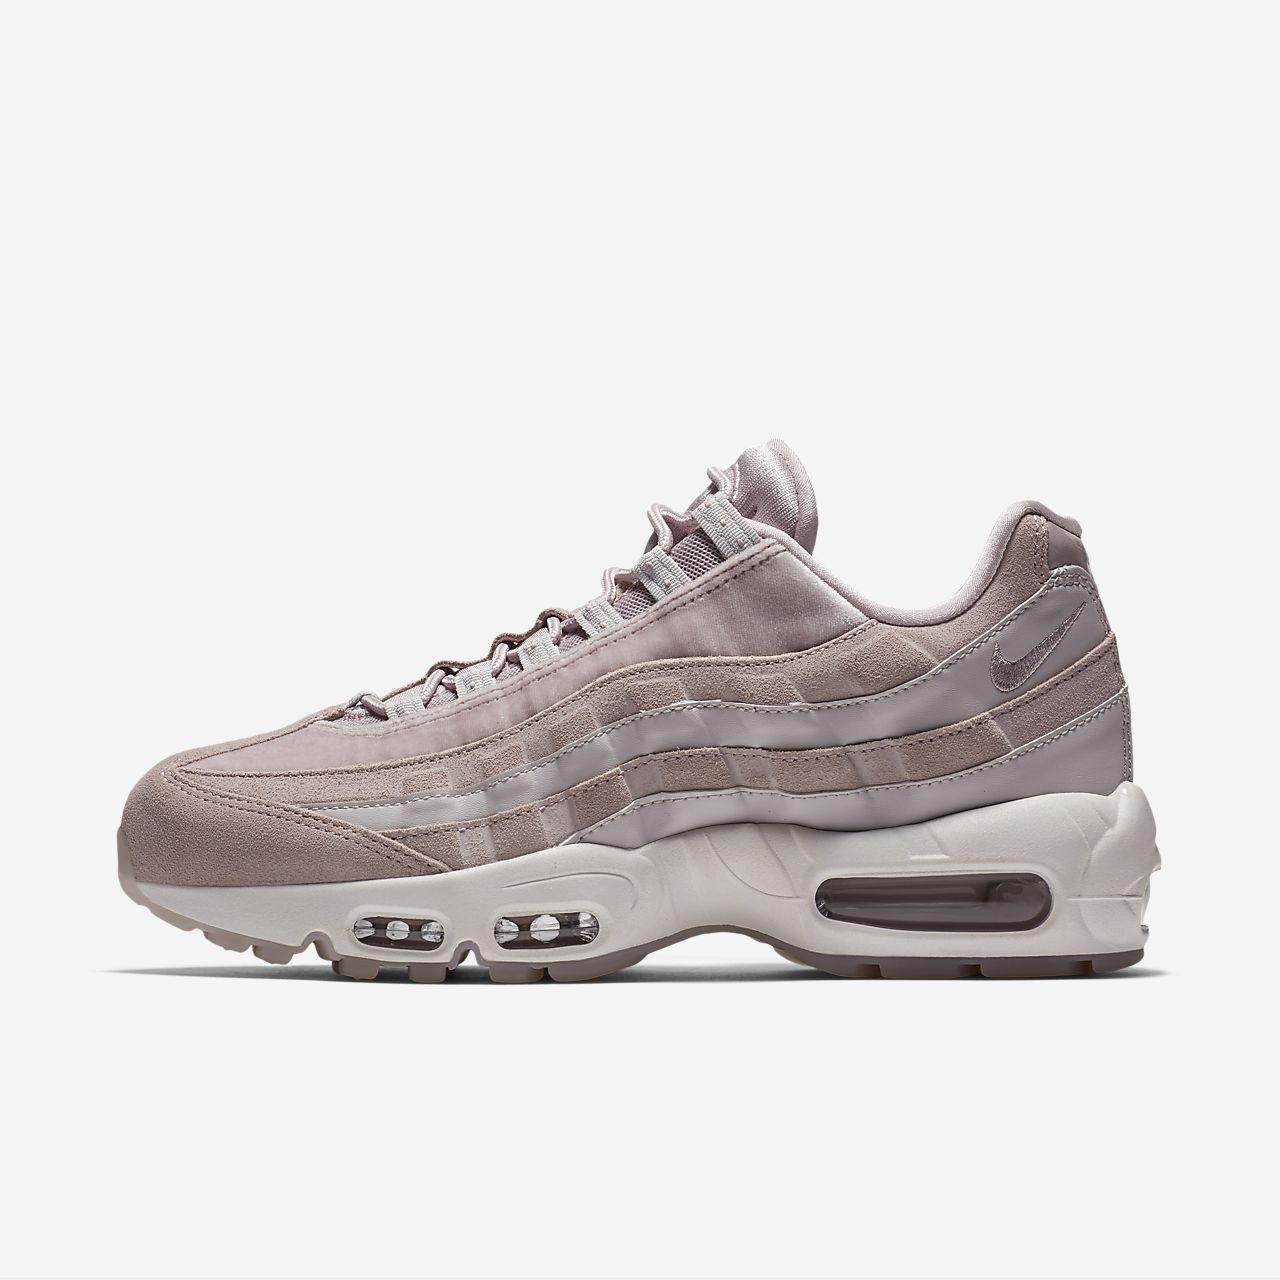 Nike Air Max 95 Zapatillas de correr